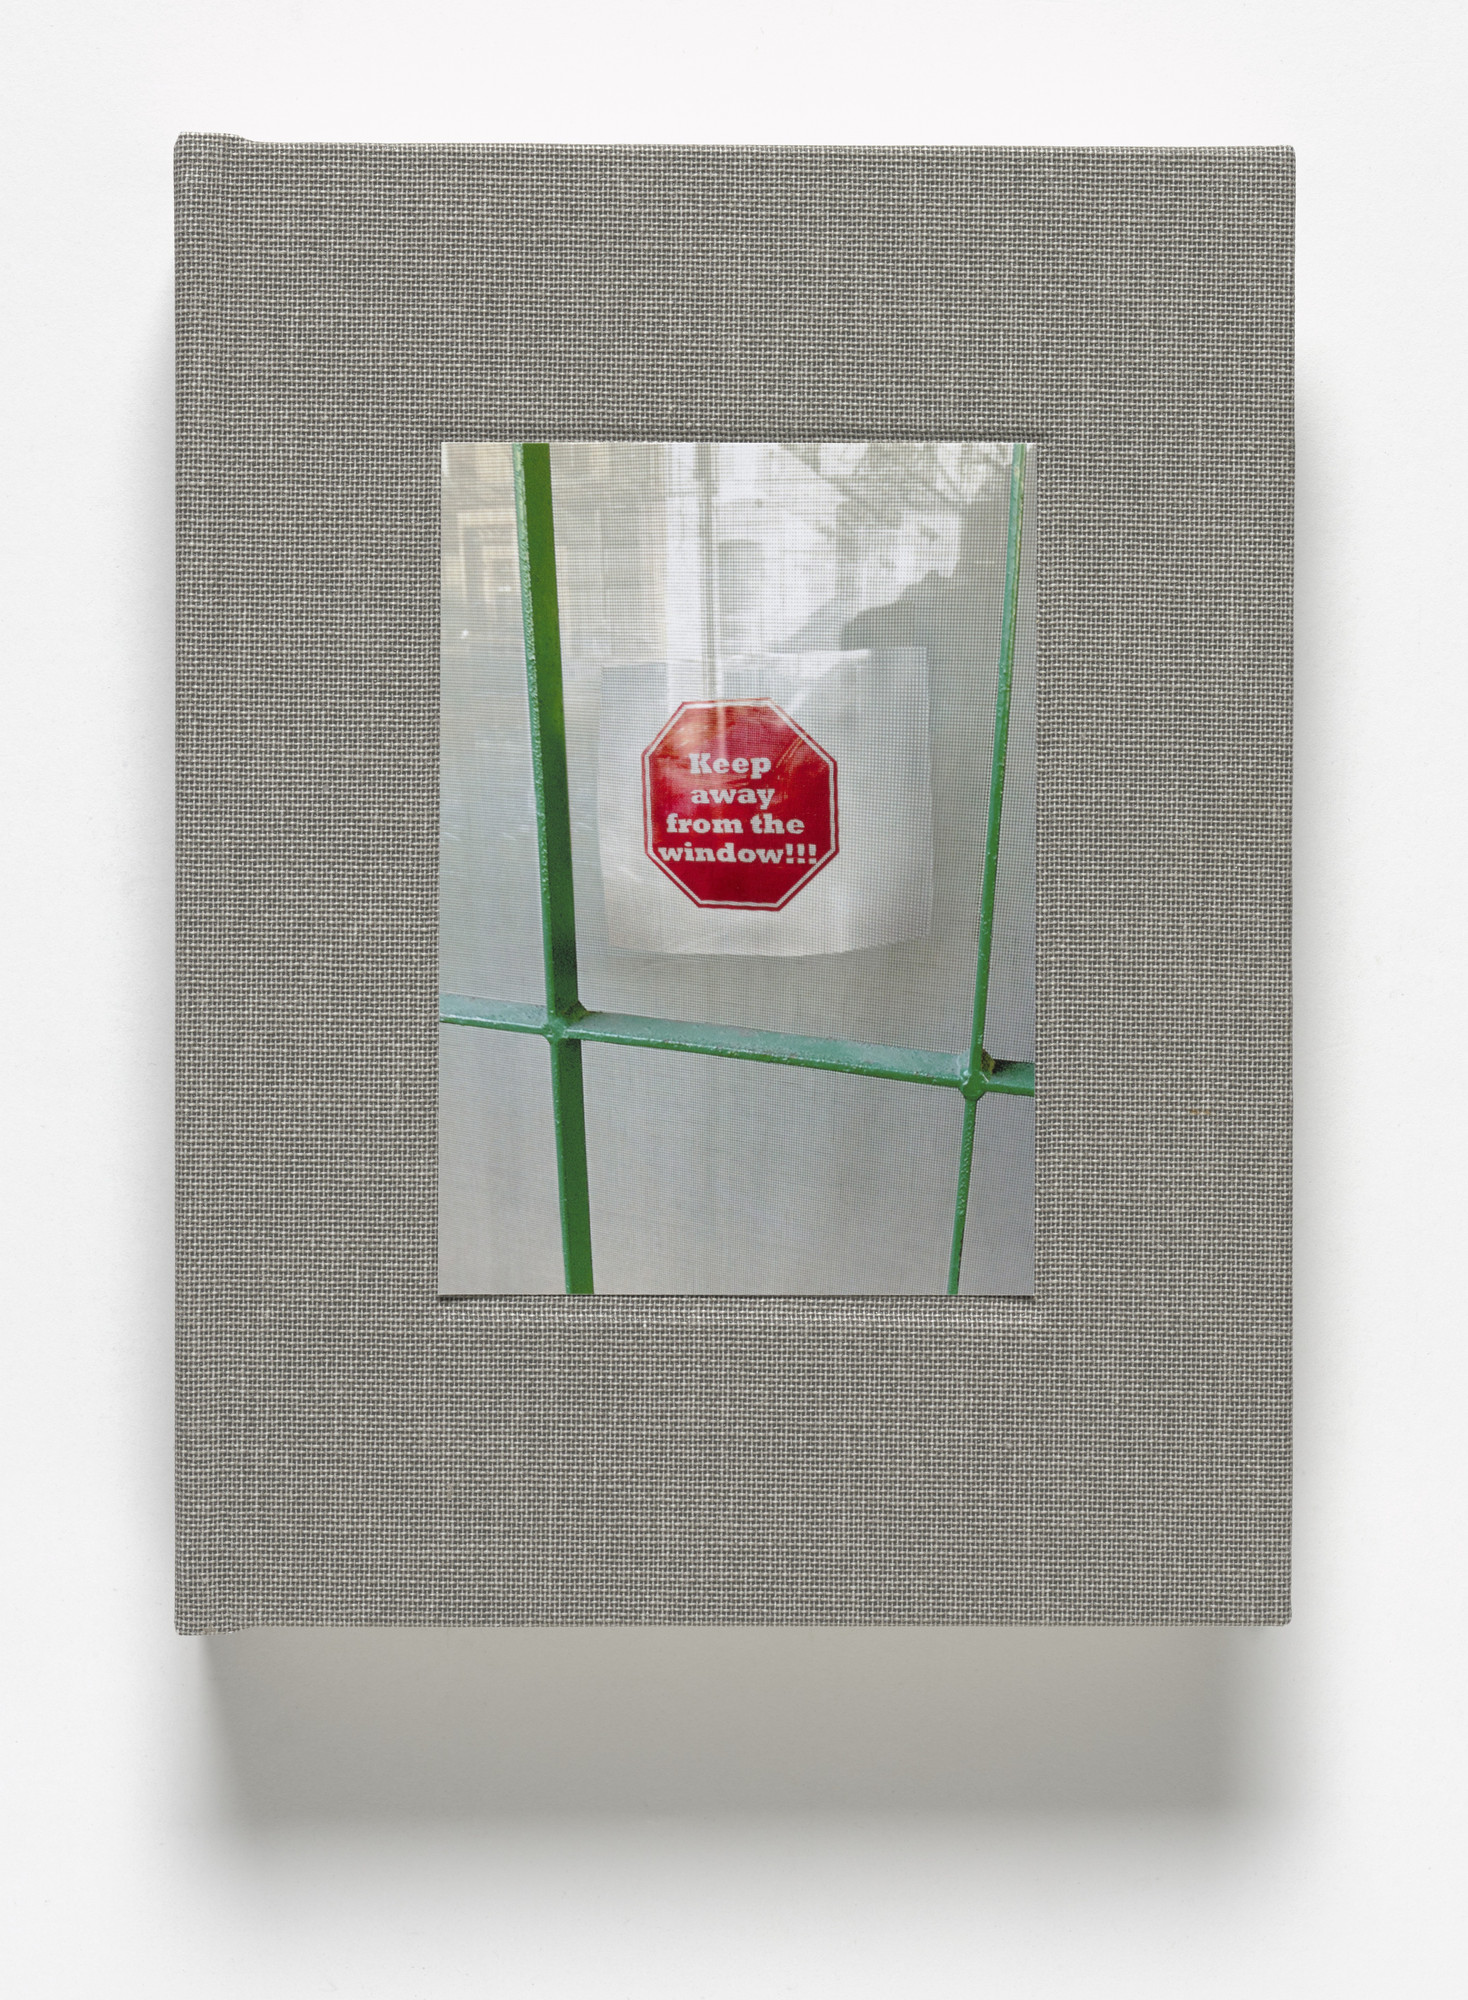 Robert Gober, Lynne Tillman. Keep Away from the Window. 2014